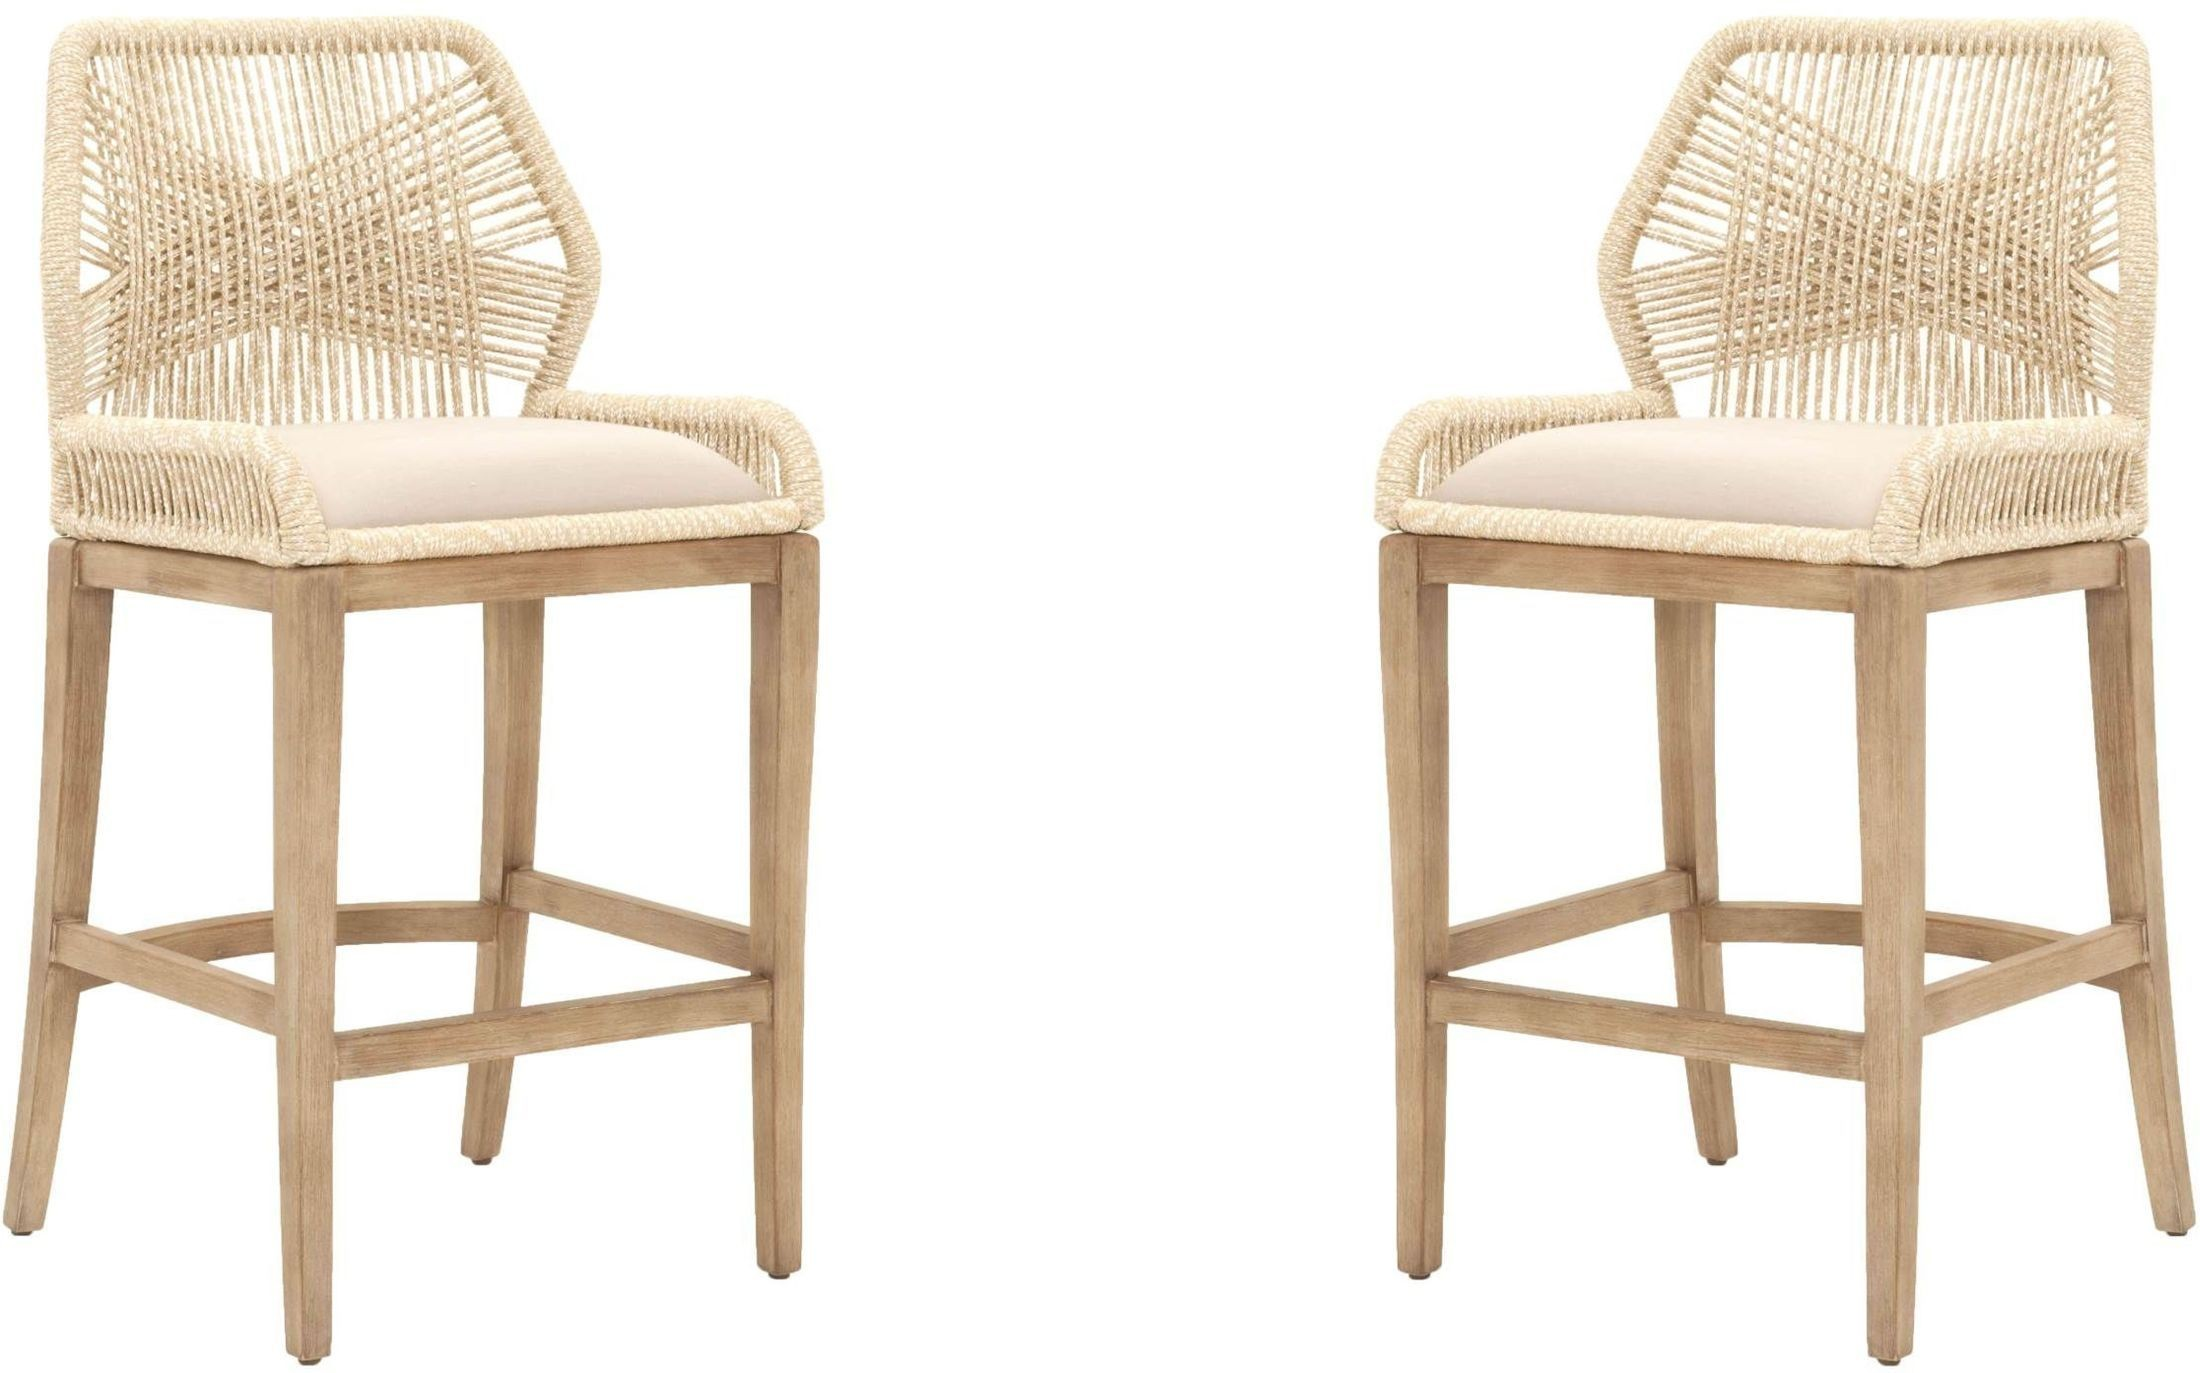 Loom Sand Barstool Set Of 2 From Orient Express Coleman